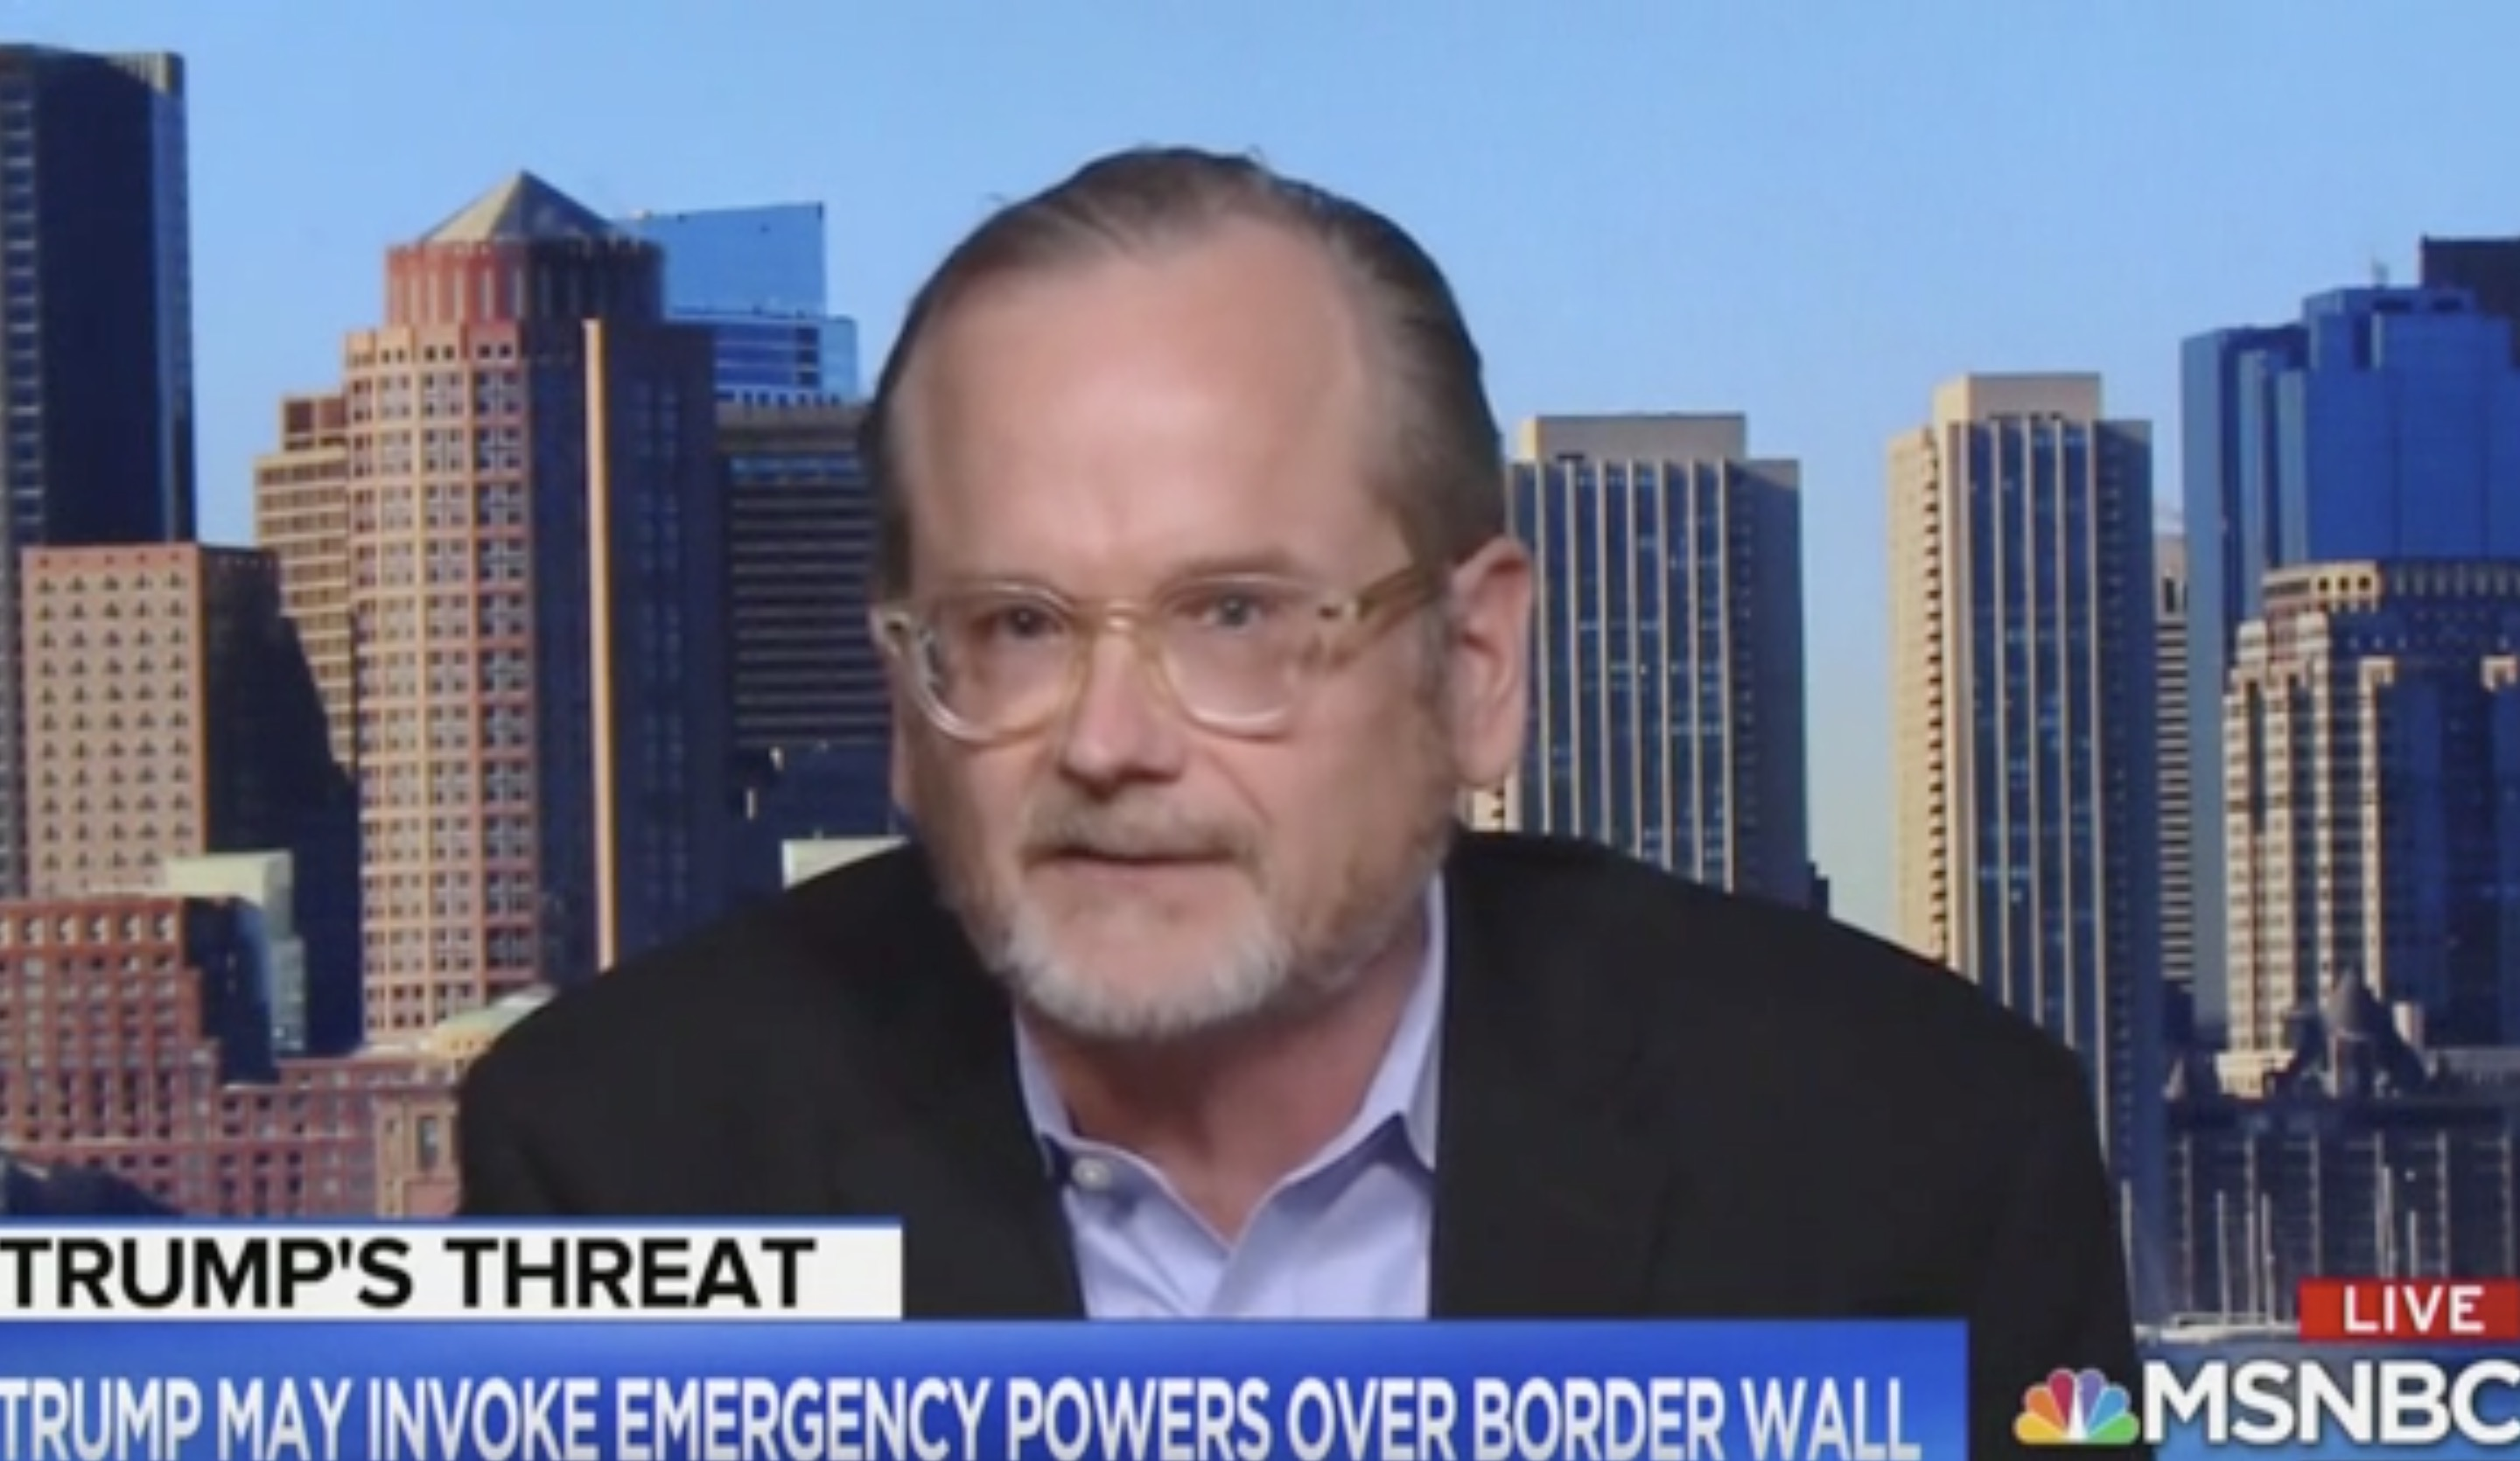 Harvard Law Professor on MSNBC: The Real National Emergency is Donald